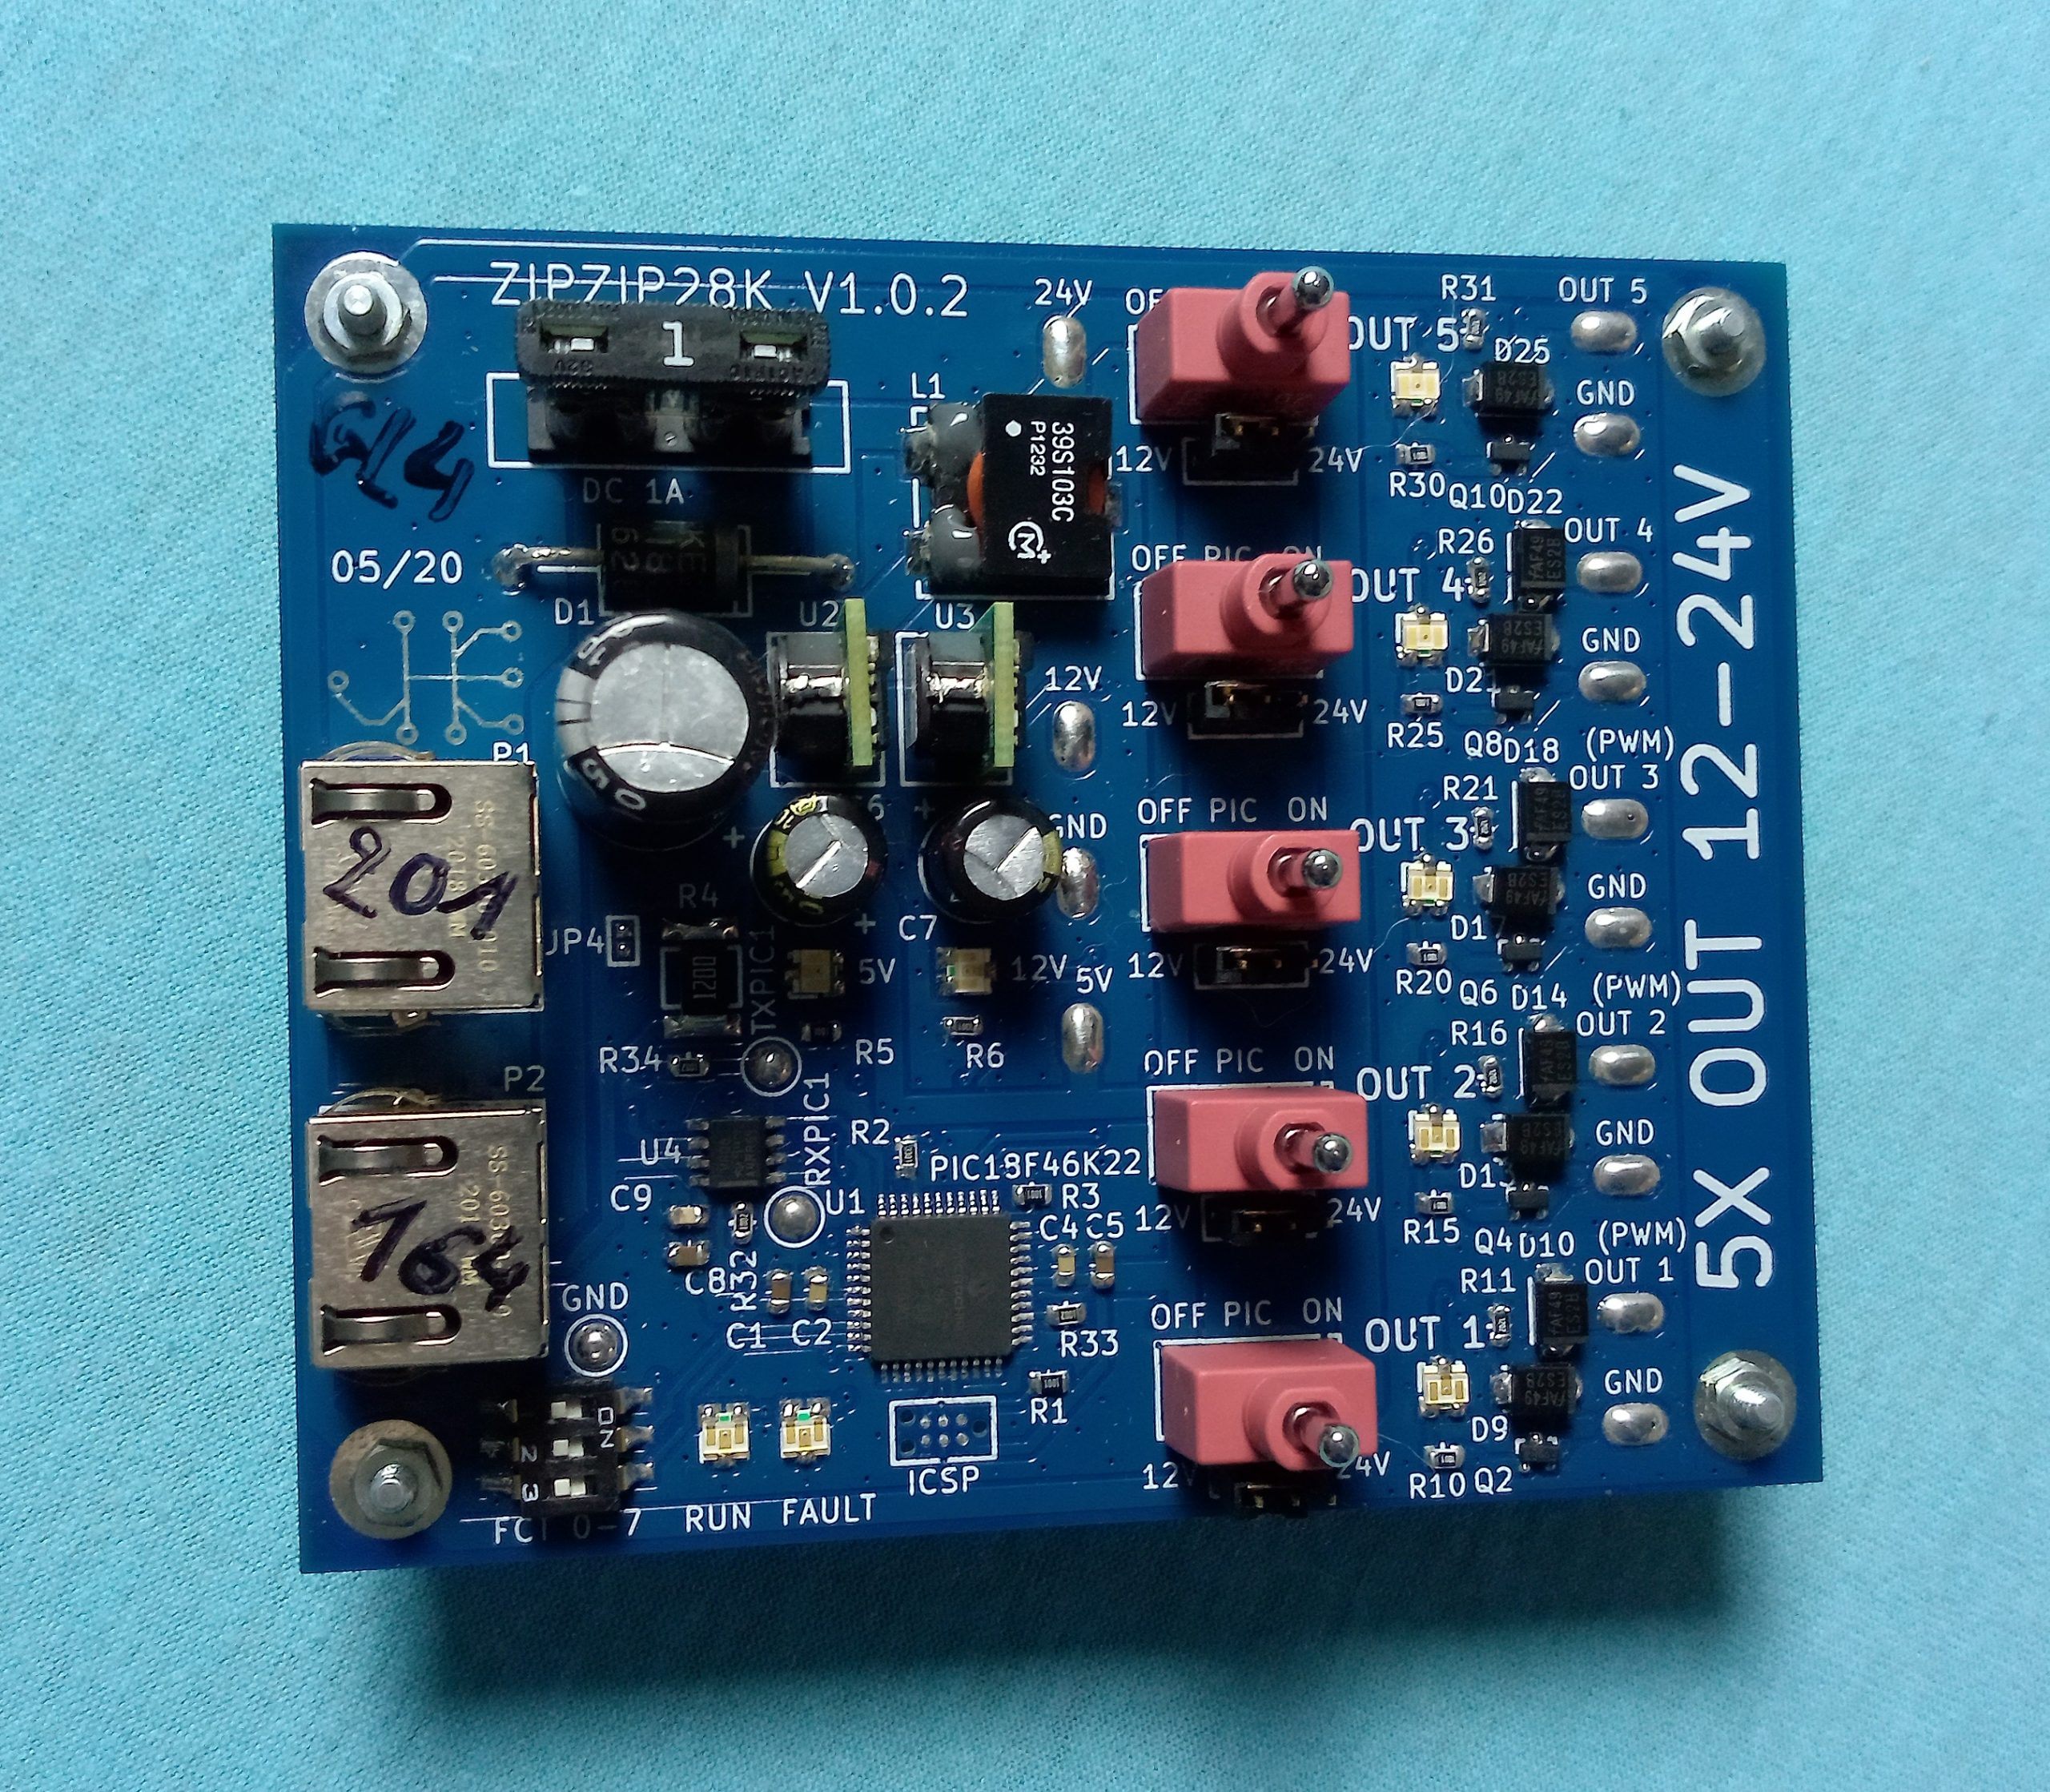 5 P-mos 12-24VDC channels driven and powered by the Fixmebus